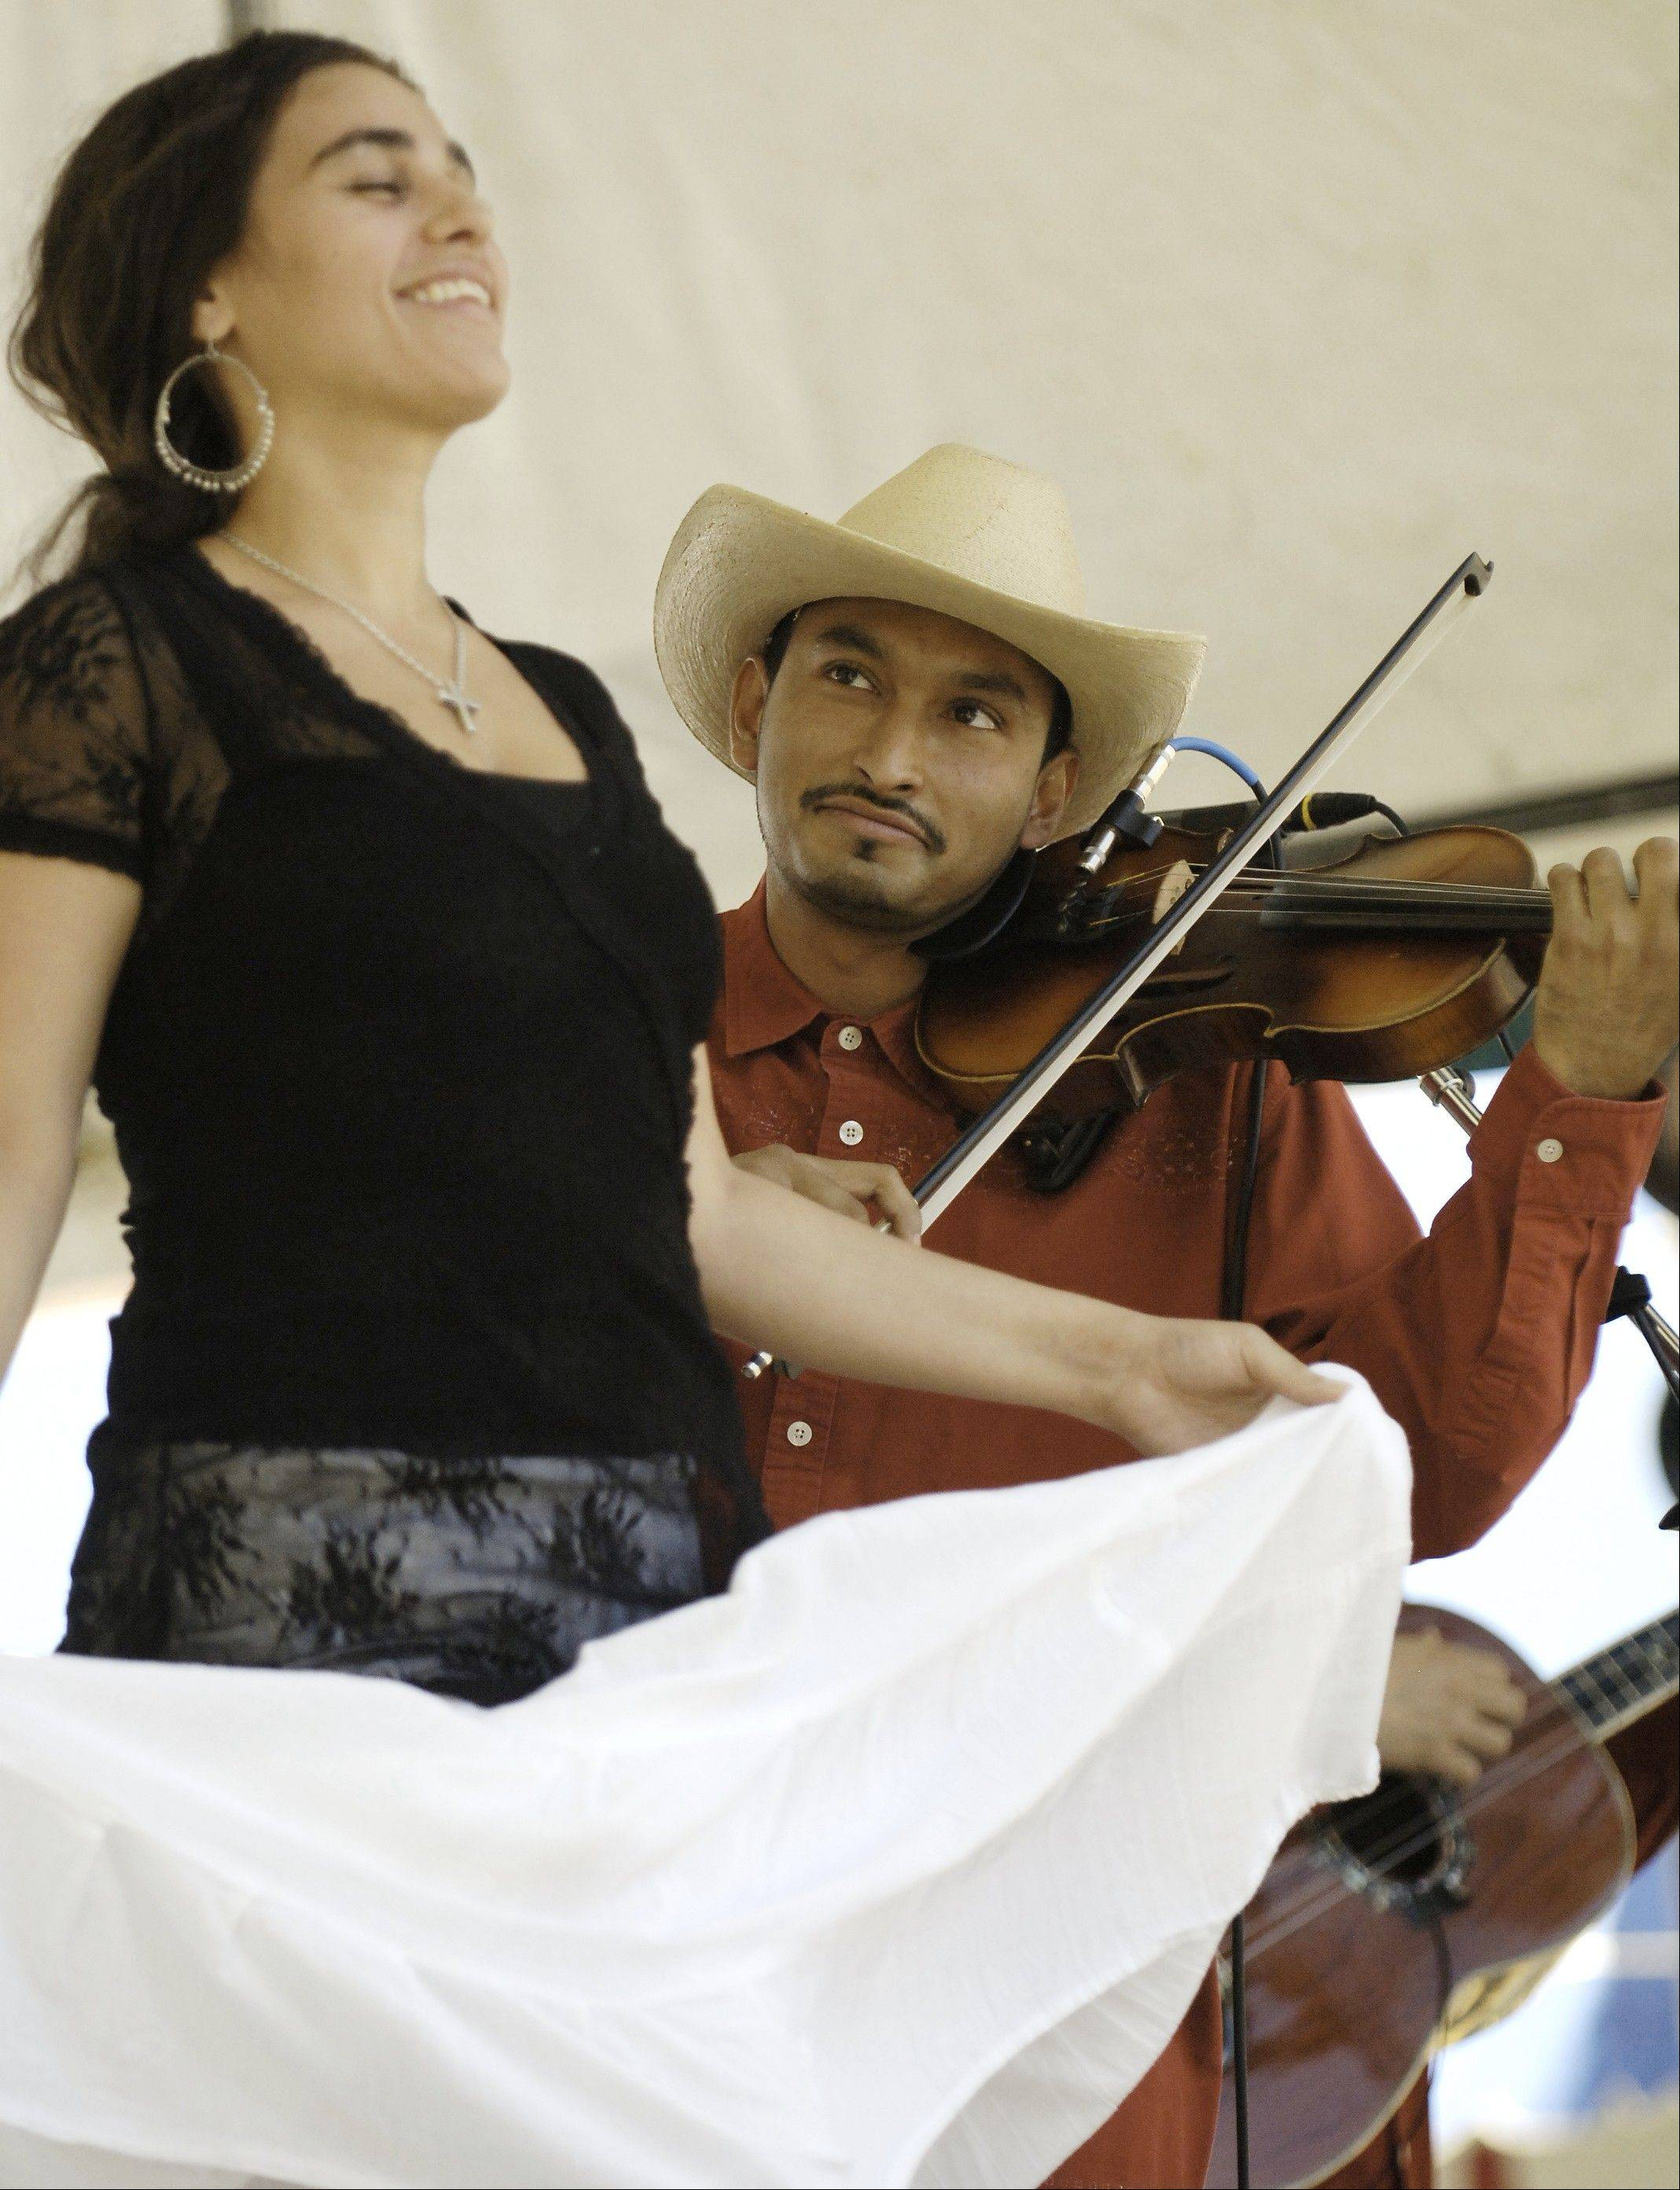 Fiestas Patrias, a celebration of Mexican independence in Aurora, has been free to fest-goers. Plans to charge a $2 admission fee this year were scrapped, but questions linger about how funds from the festival are used.